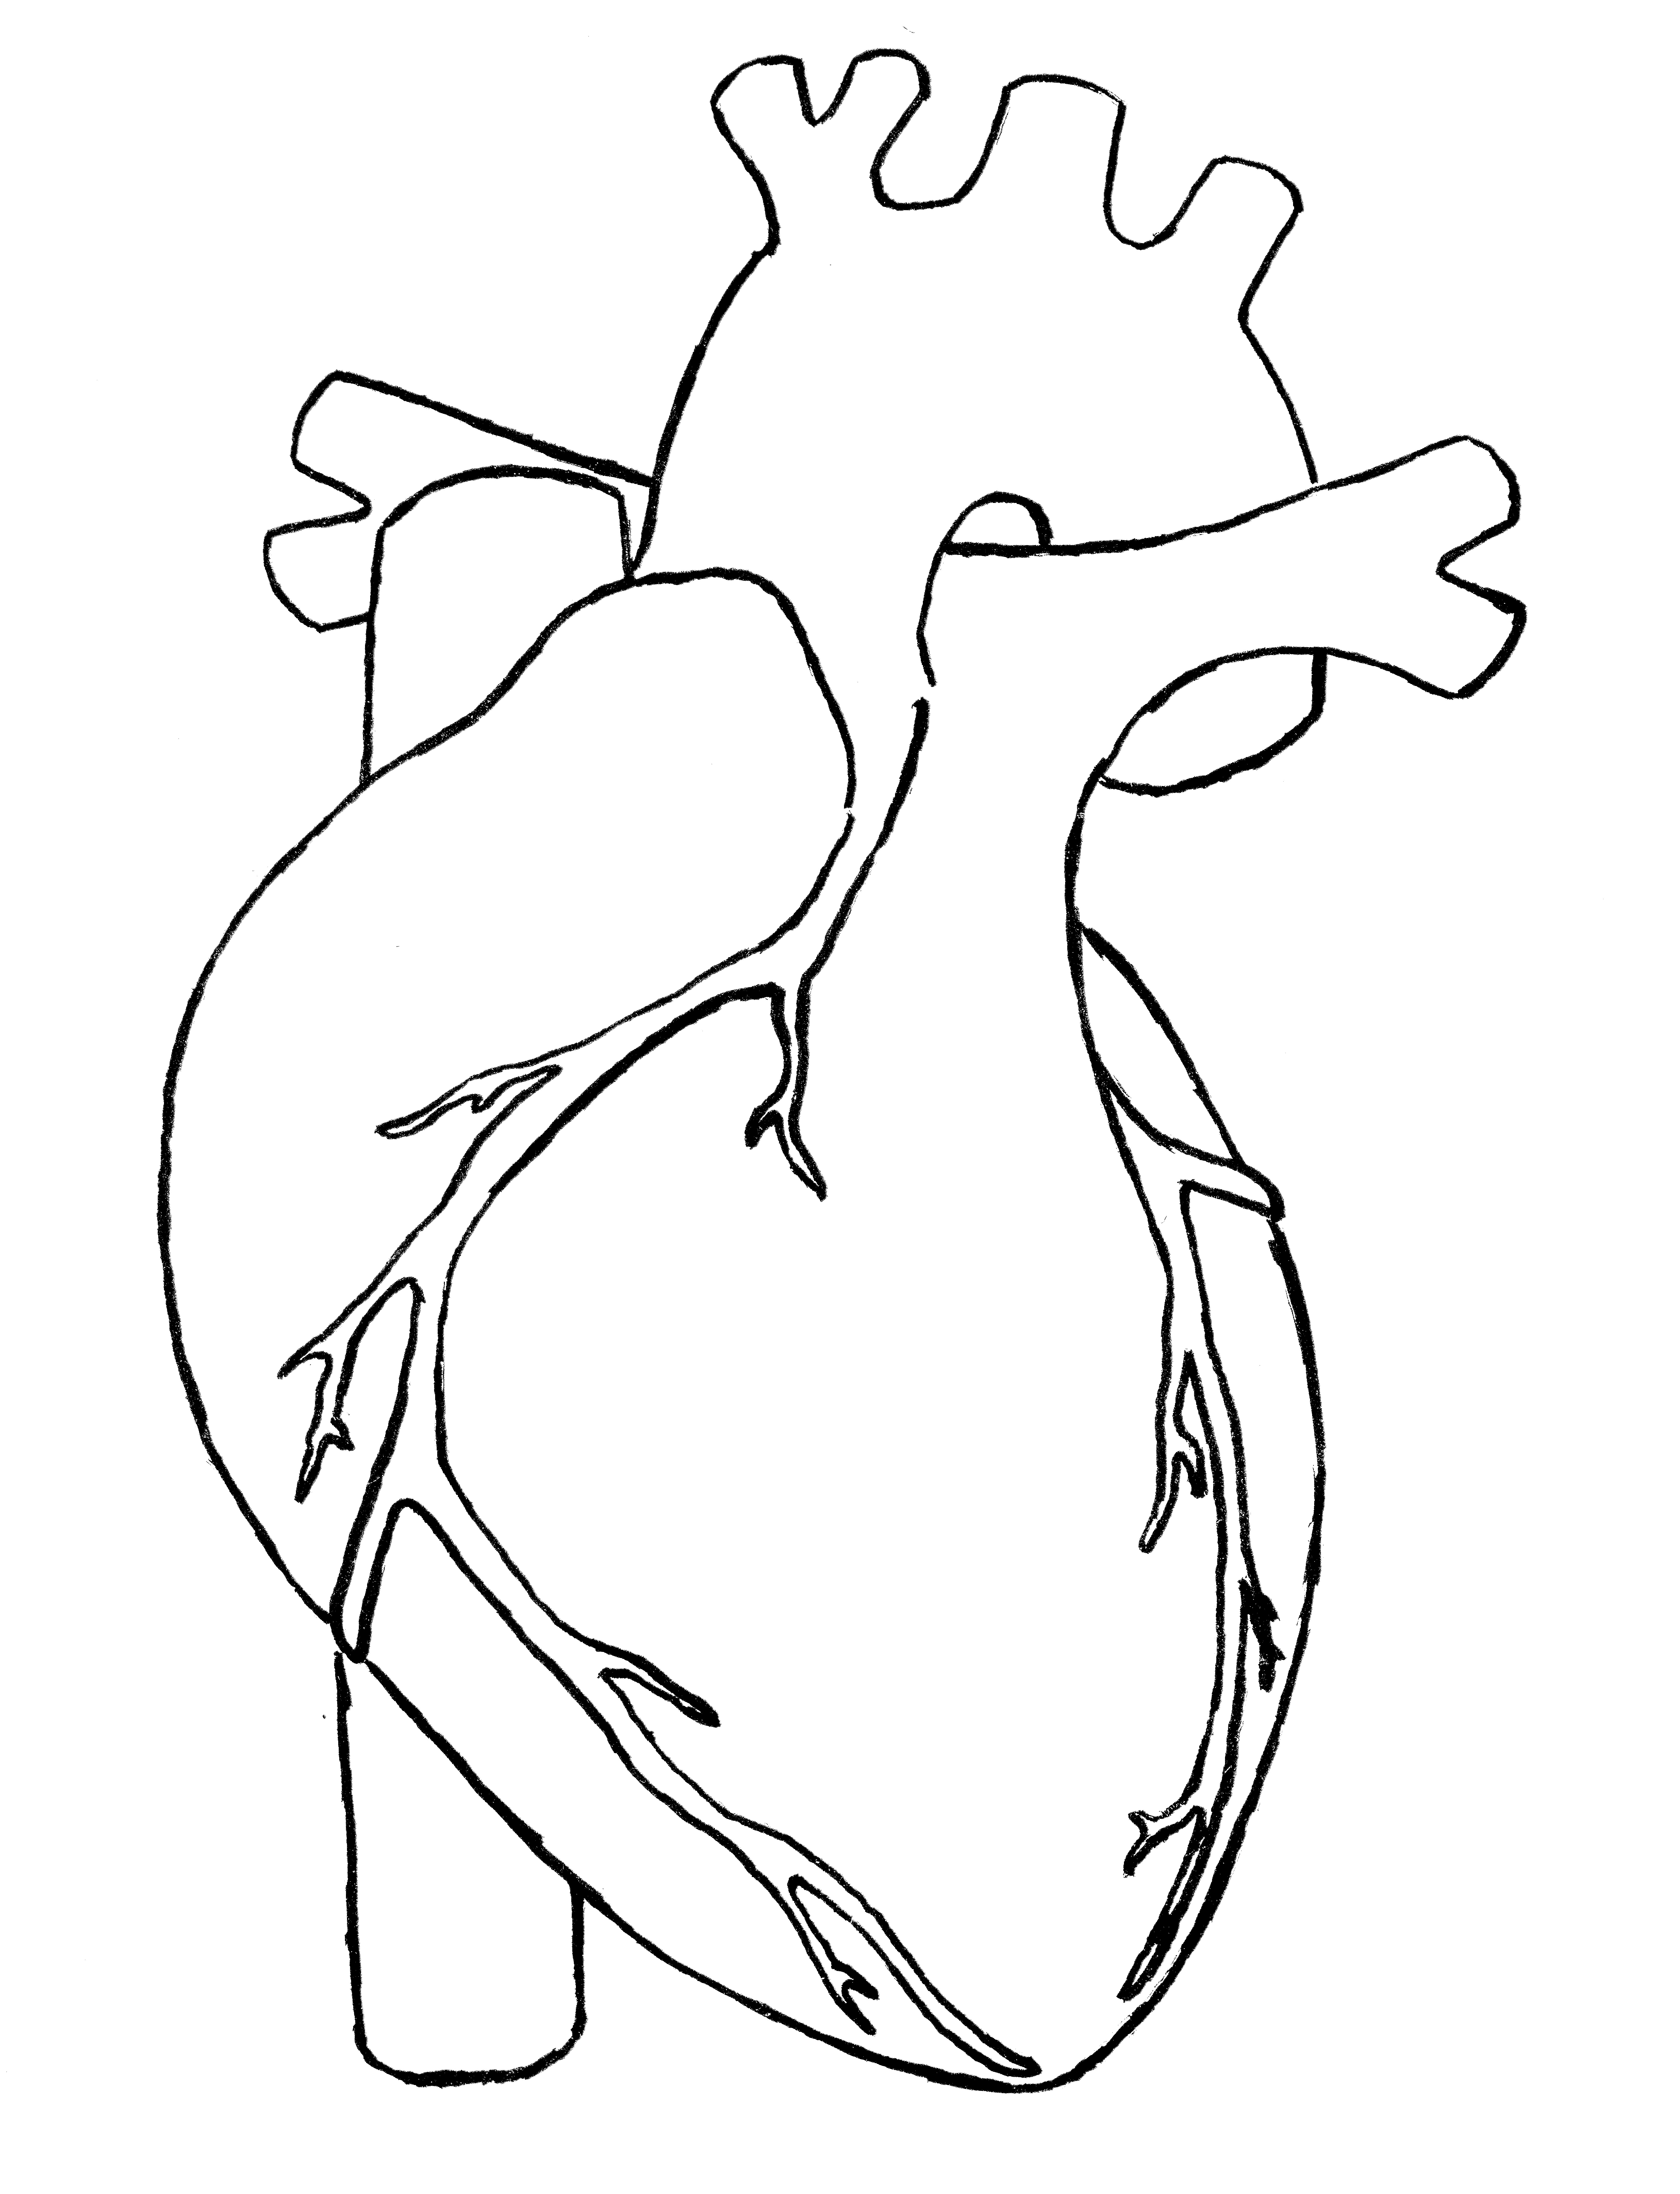 Realistic Human Heart Outline